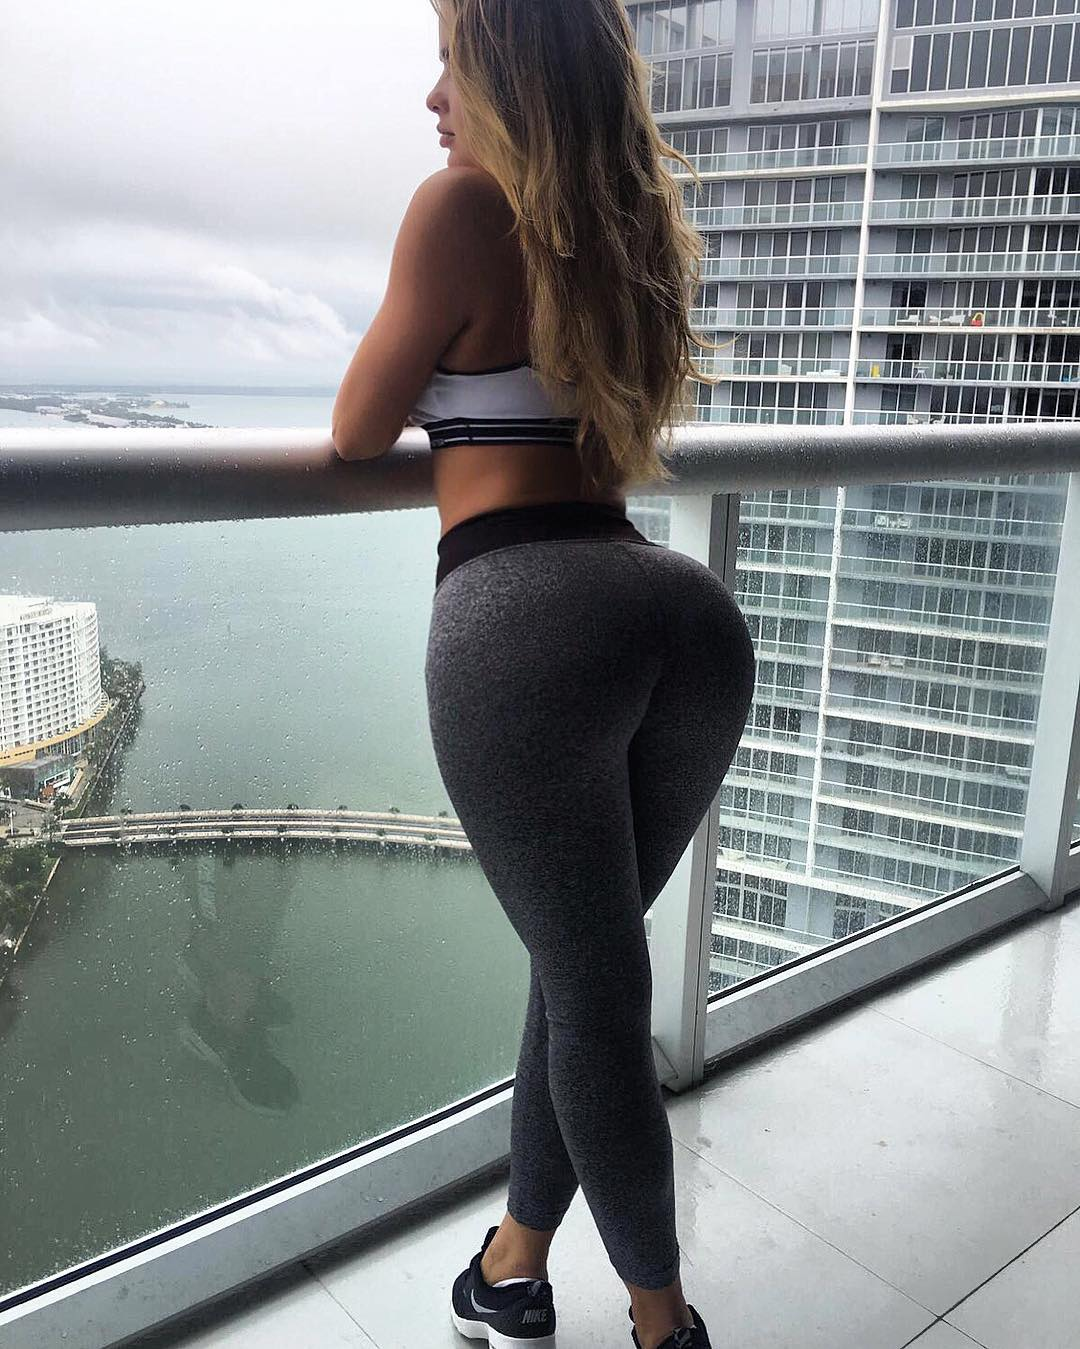 Anastasiya-Kvitko-Wallpapers-Insta-Fit-Bio-5